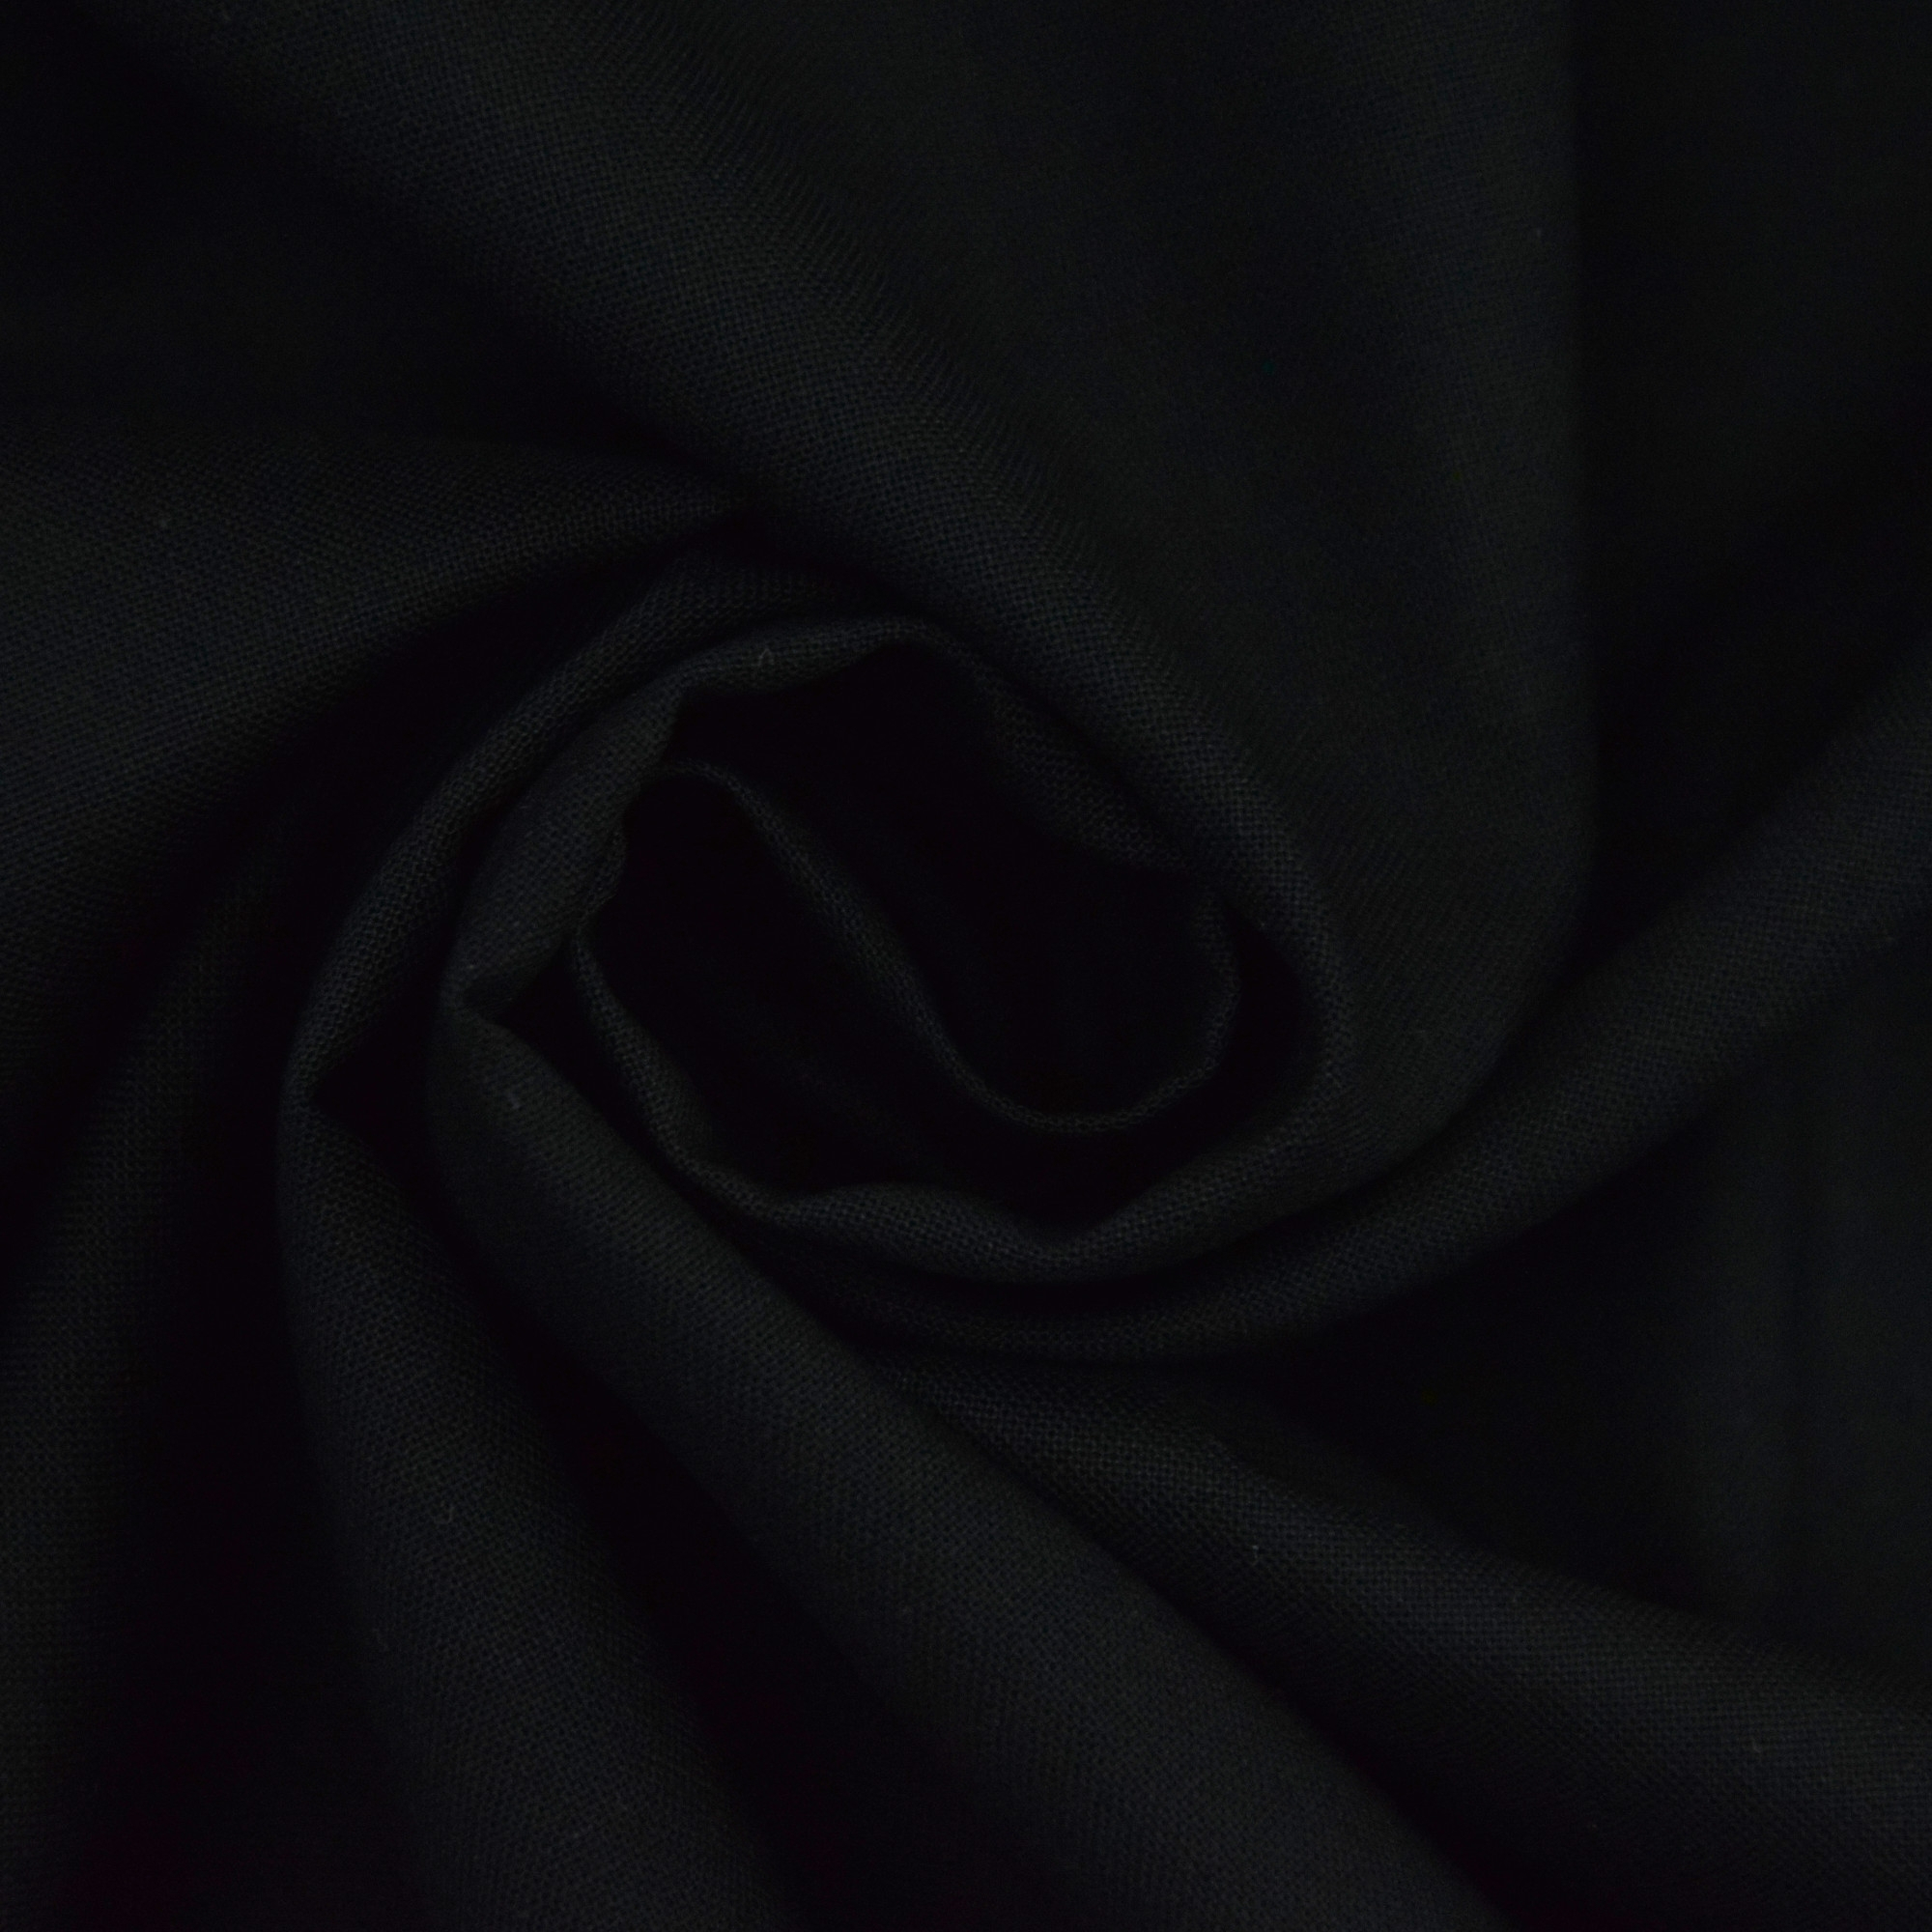 Cotton Cretonne black | 100.018-5001 | schwarz